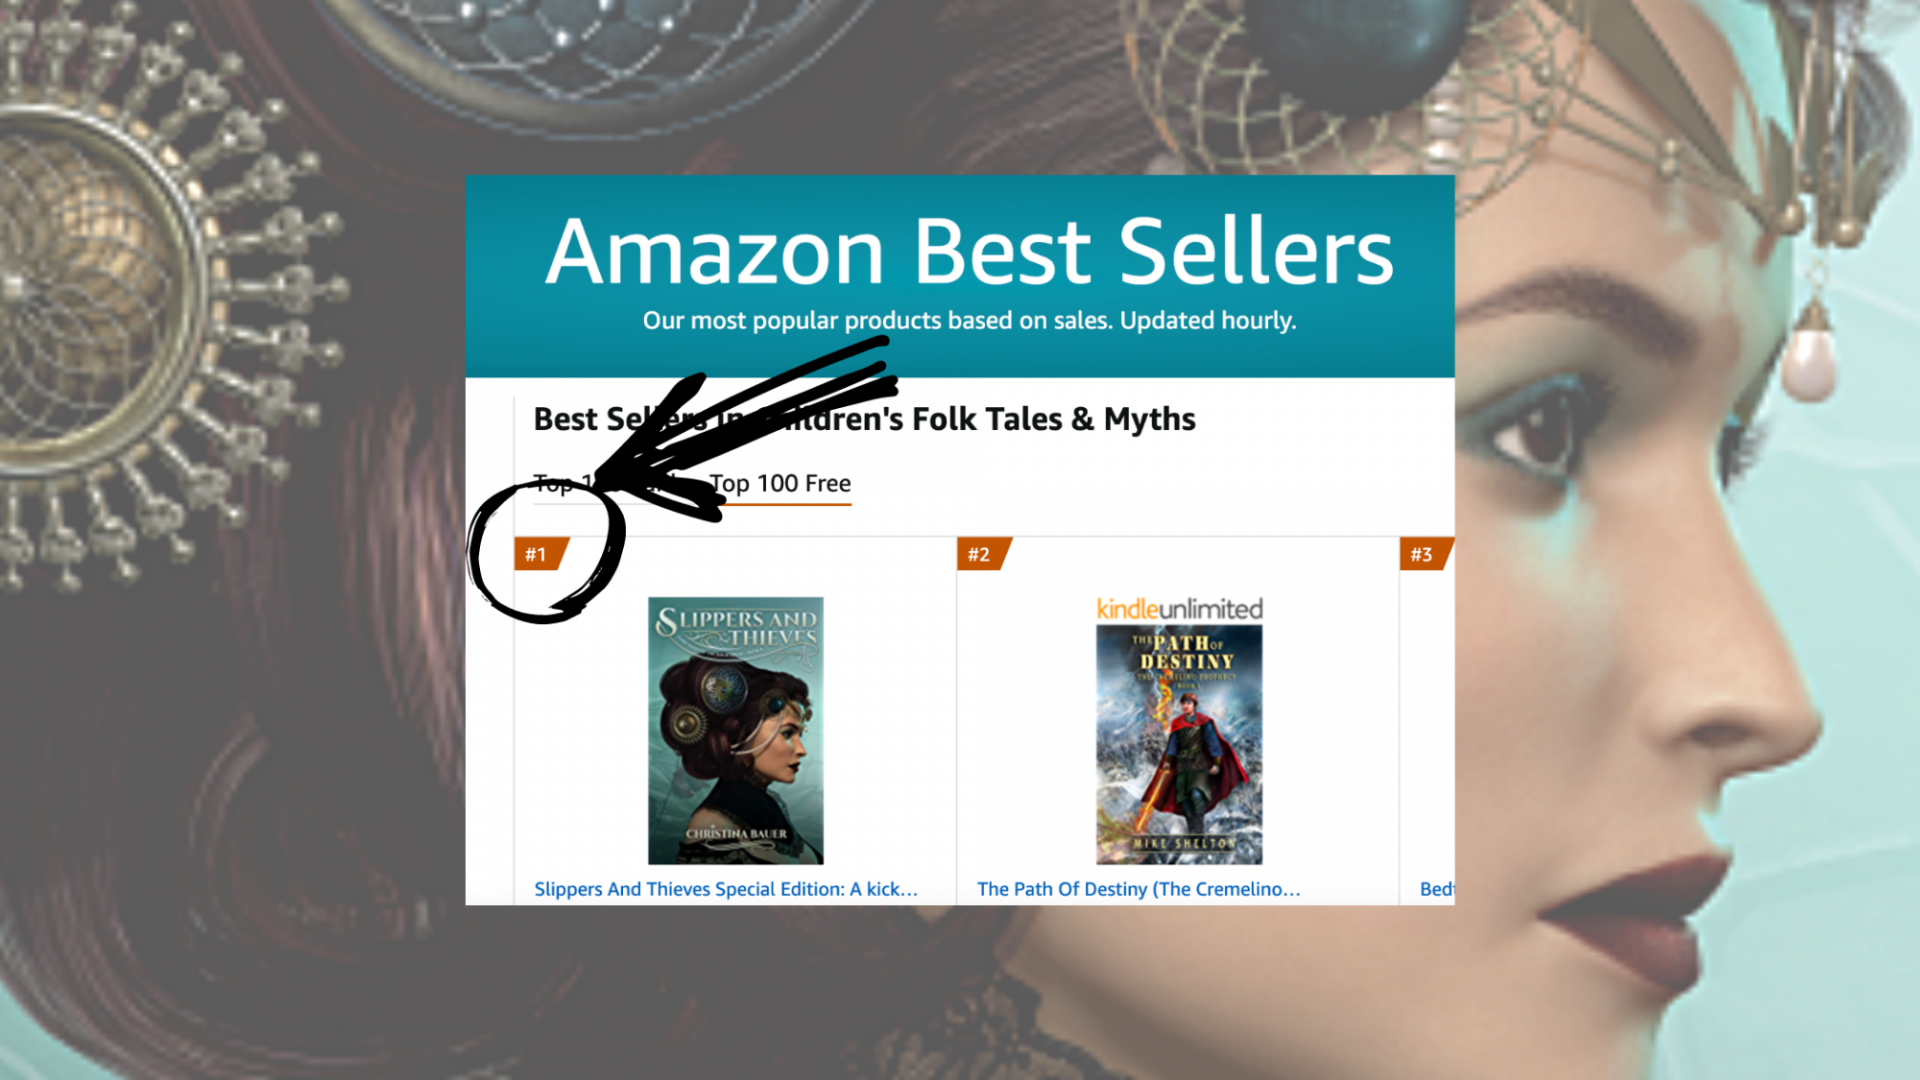 Press Release: SLIPPERS AND THIEVES Achieves #1 Ranking on Amazon